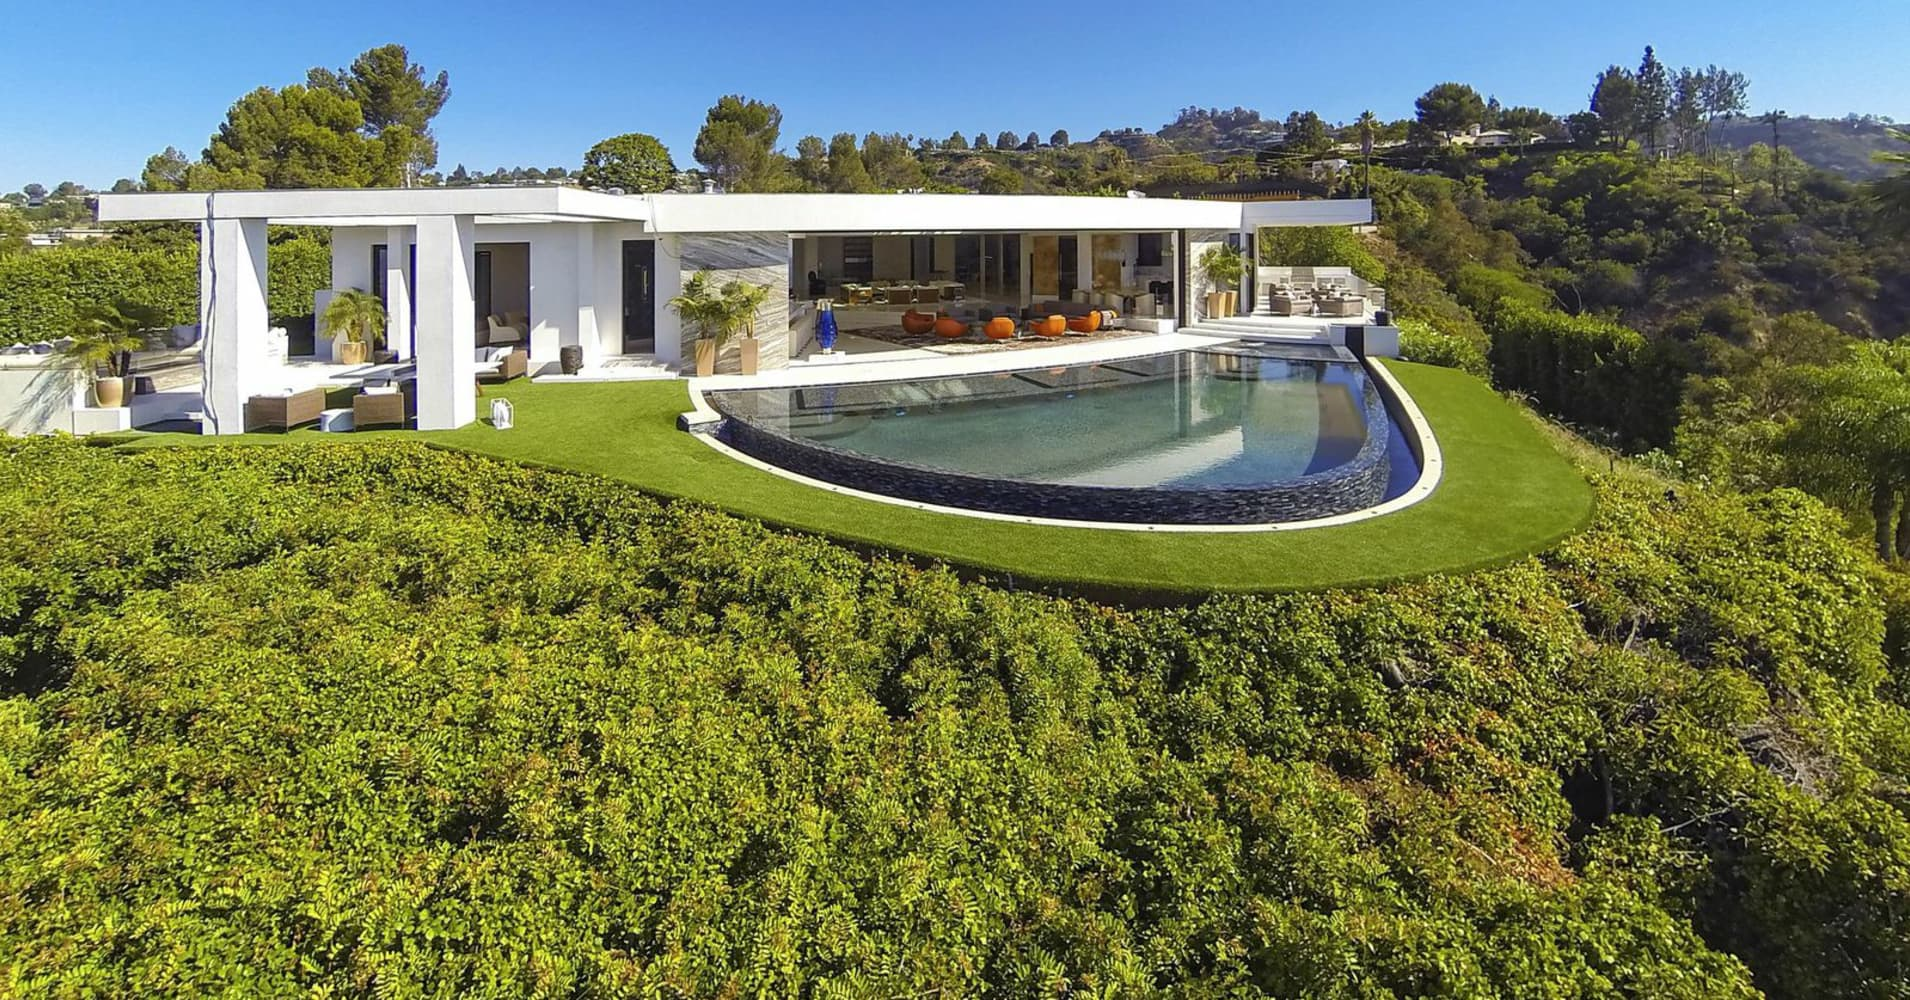 Minecraft founder markus persson bought this beverly hills california home for 70 million